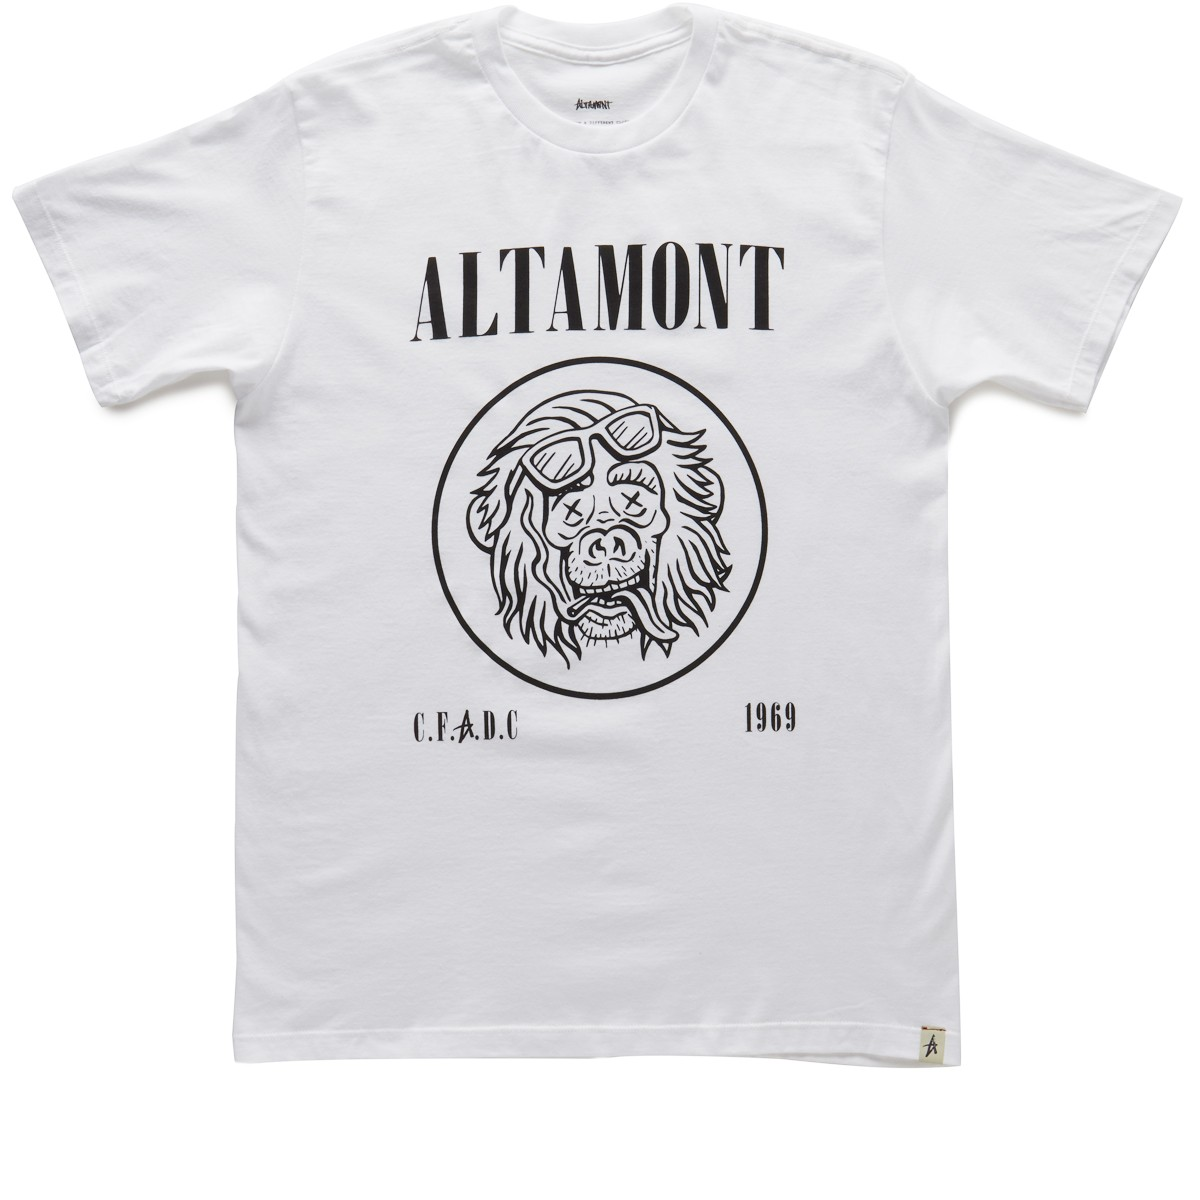 Altamont All Ages T-Shirt - White